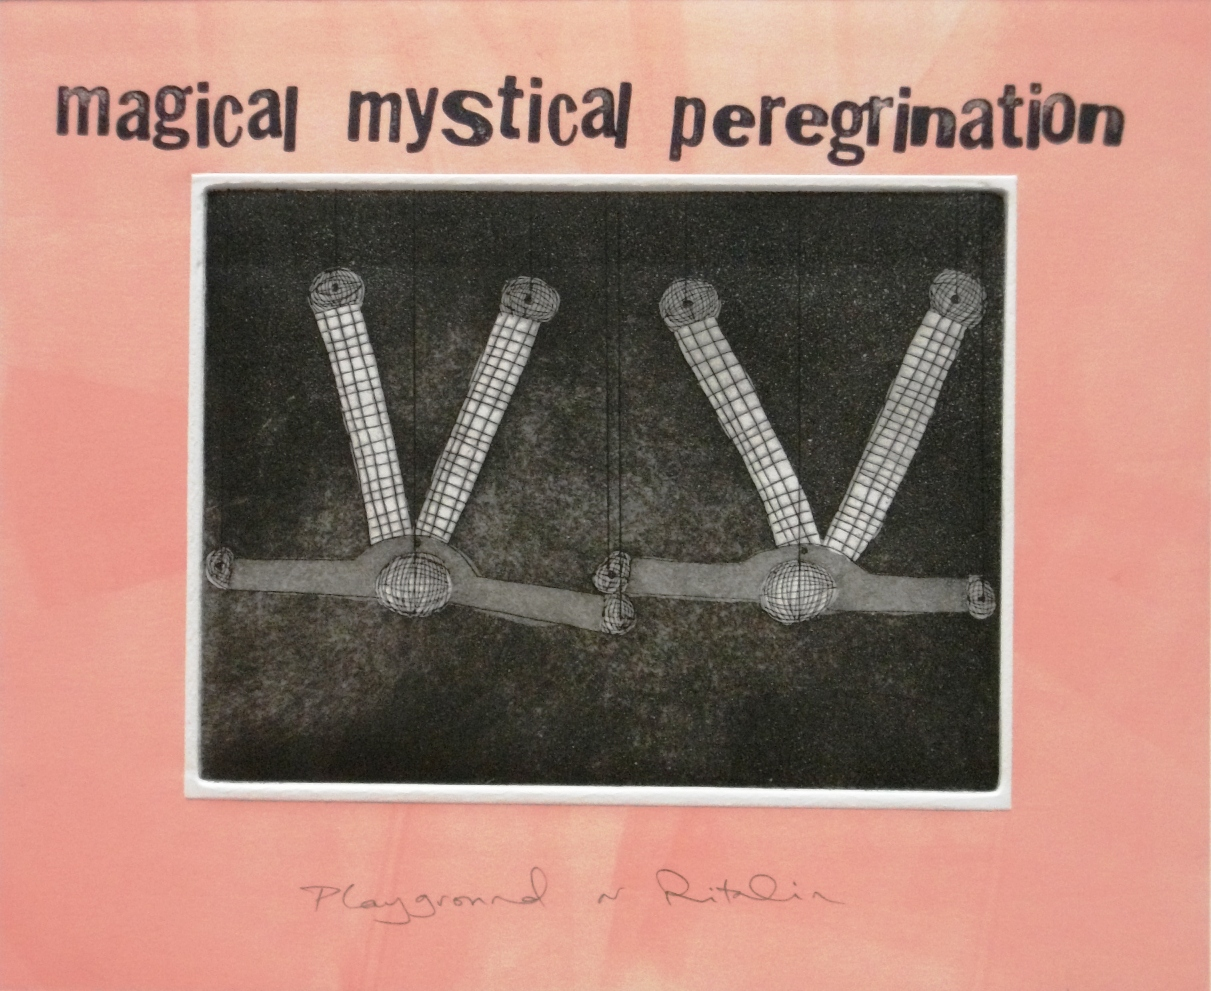 Magical-Mystical-Peregrination-etching-relief-and-block-letters-245-x-295, by the artist Helena Orlowski